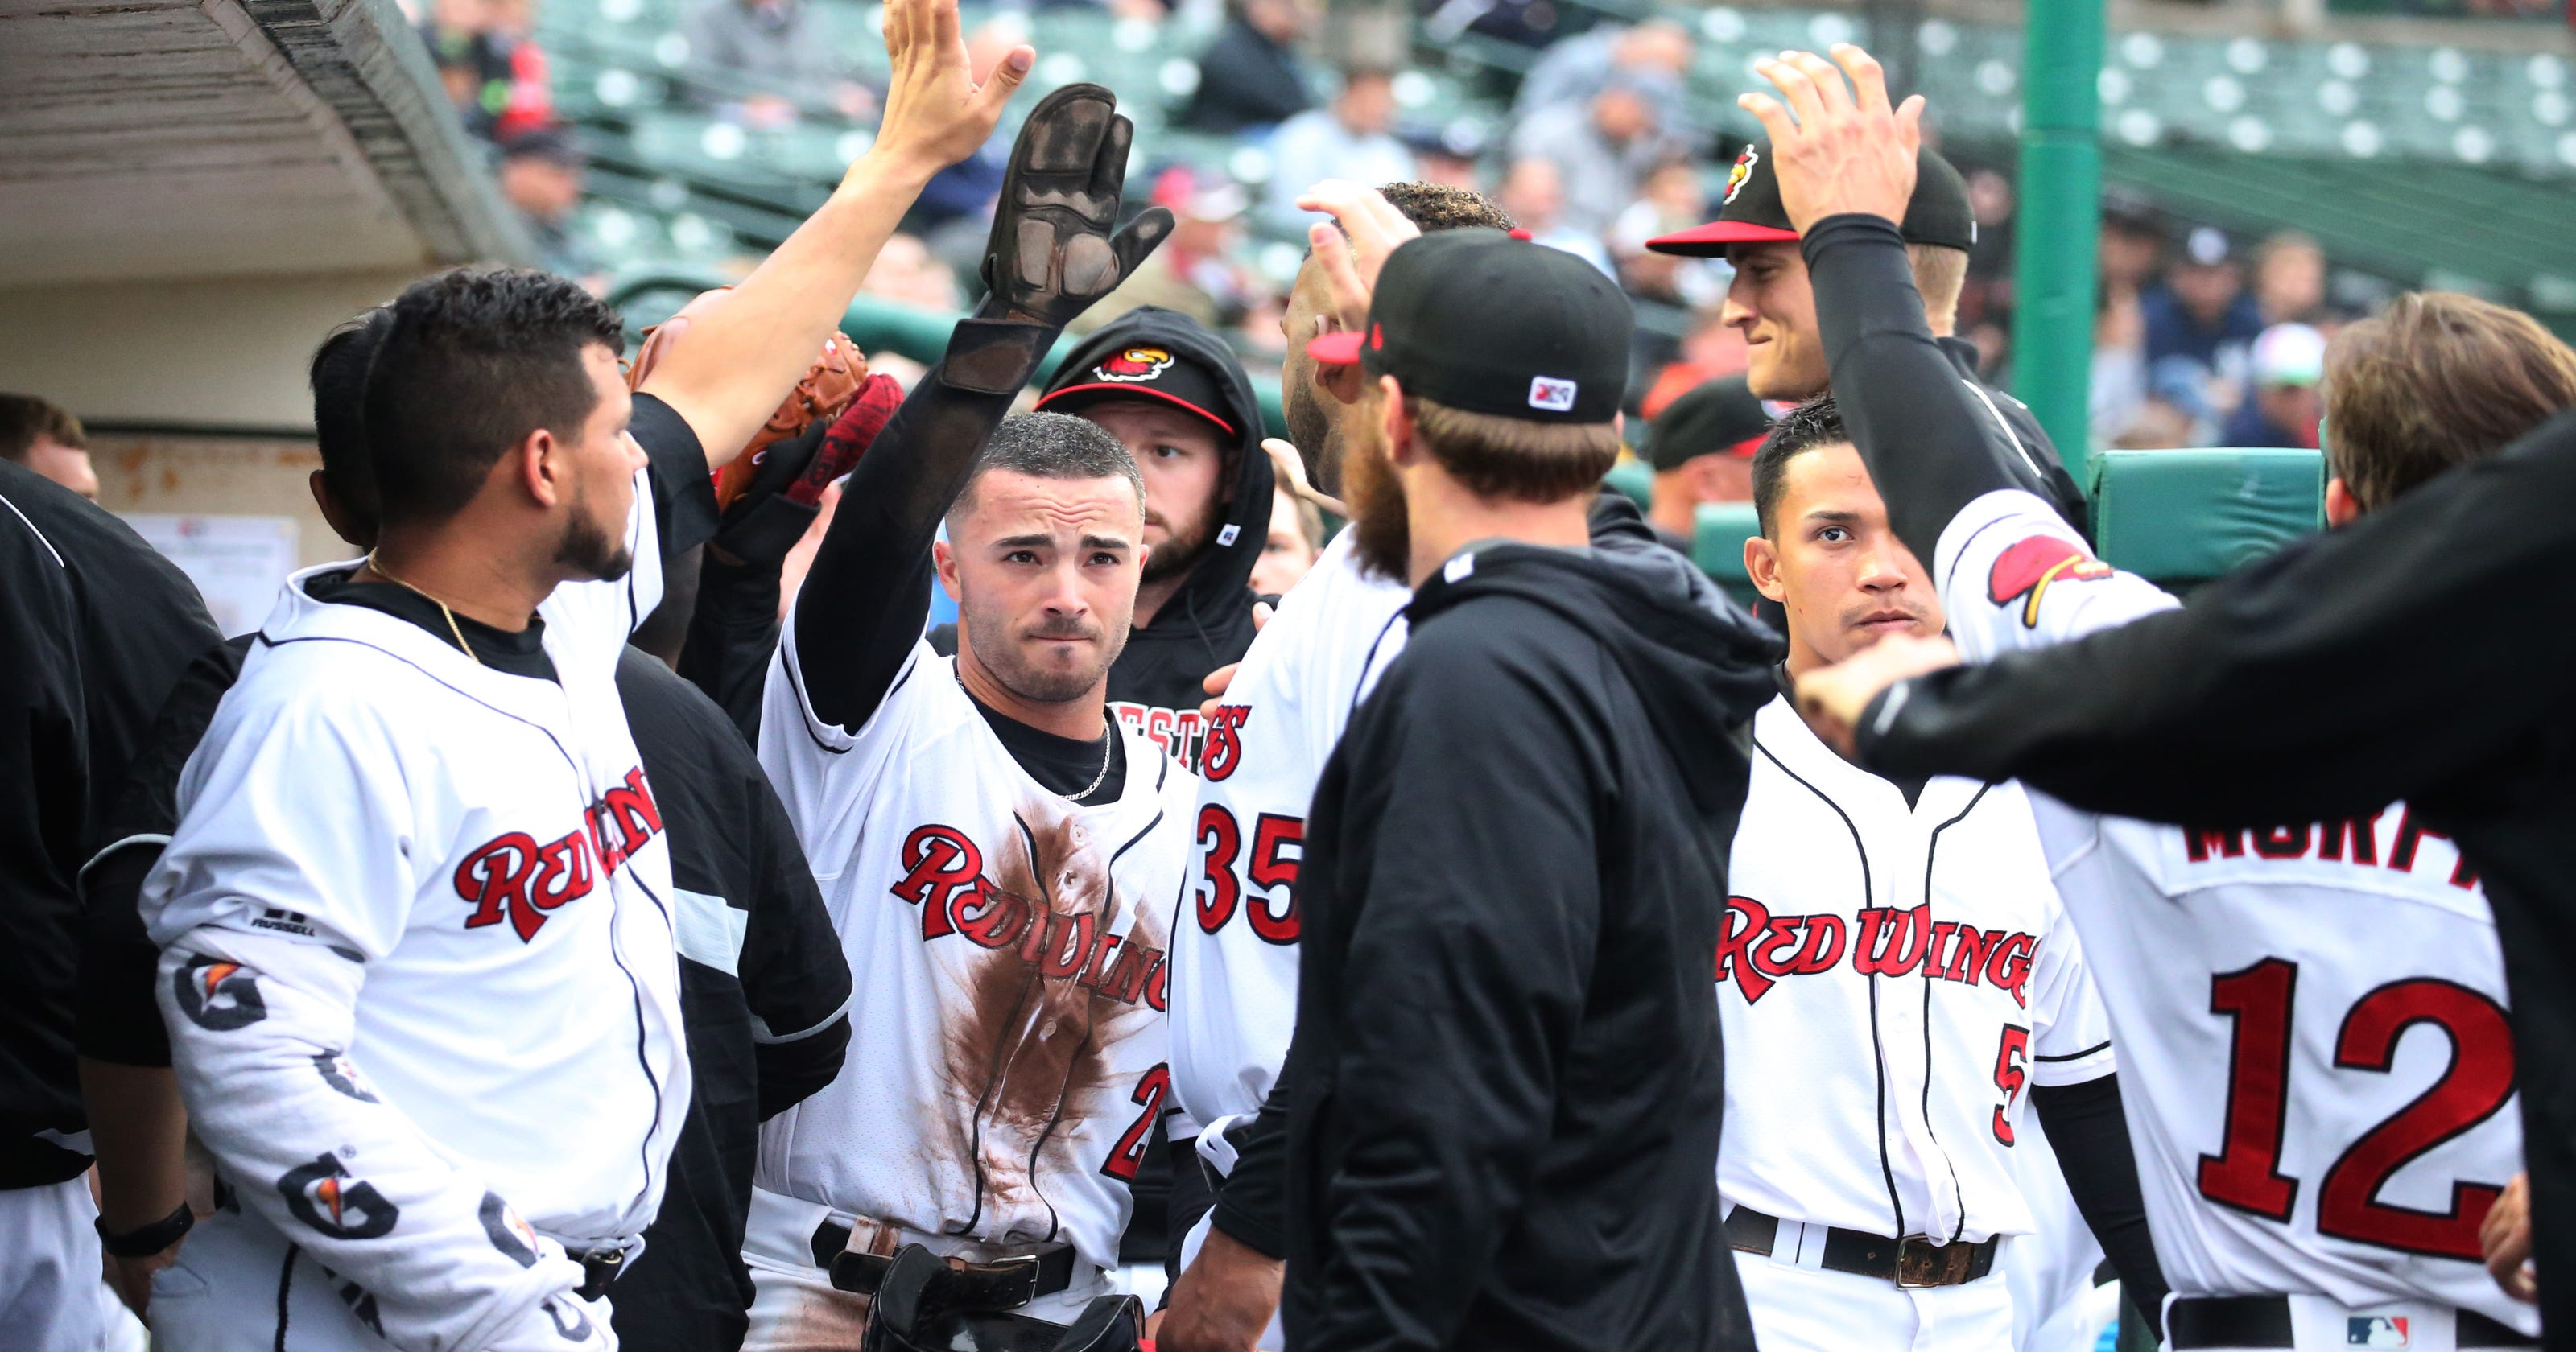 Rochester Red Wings Roster Announced